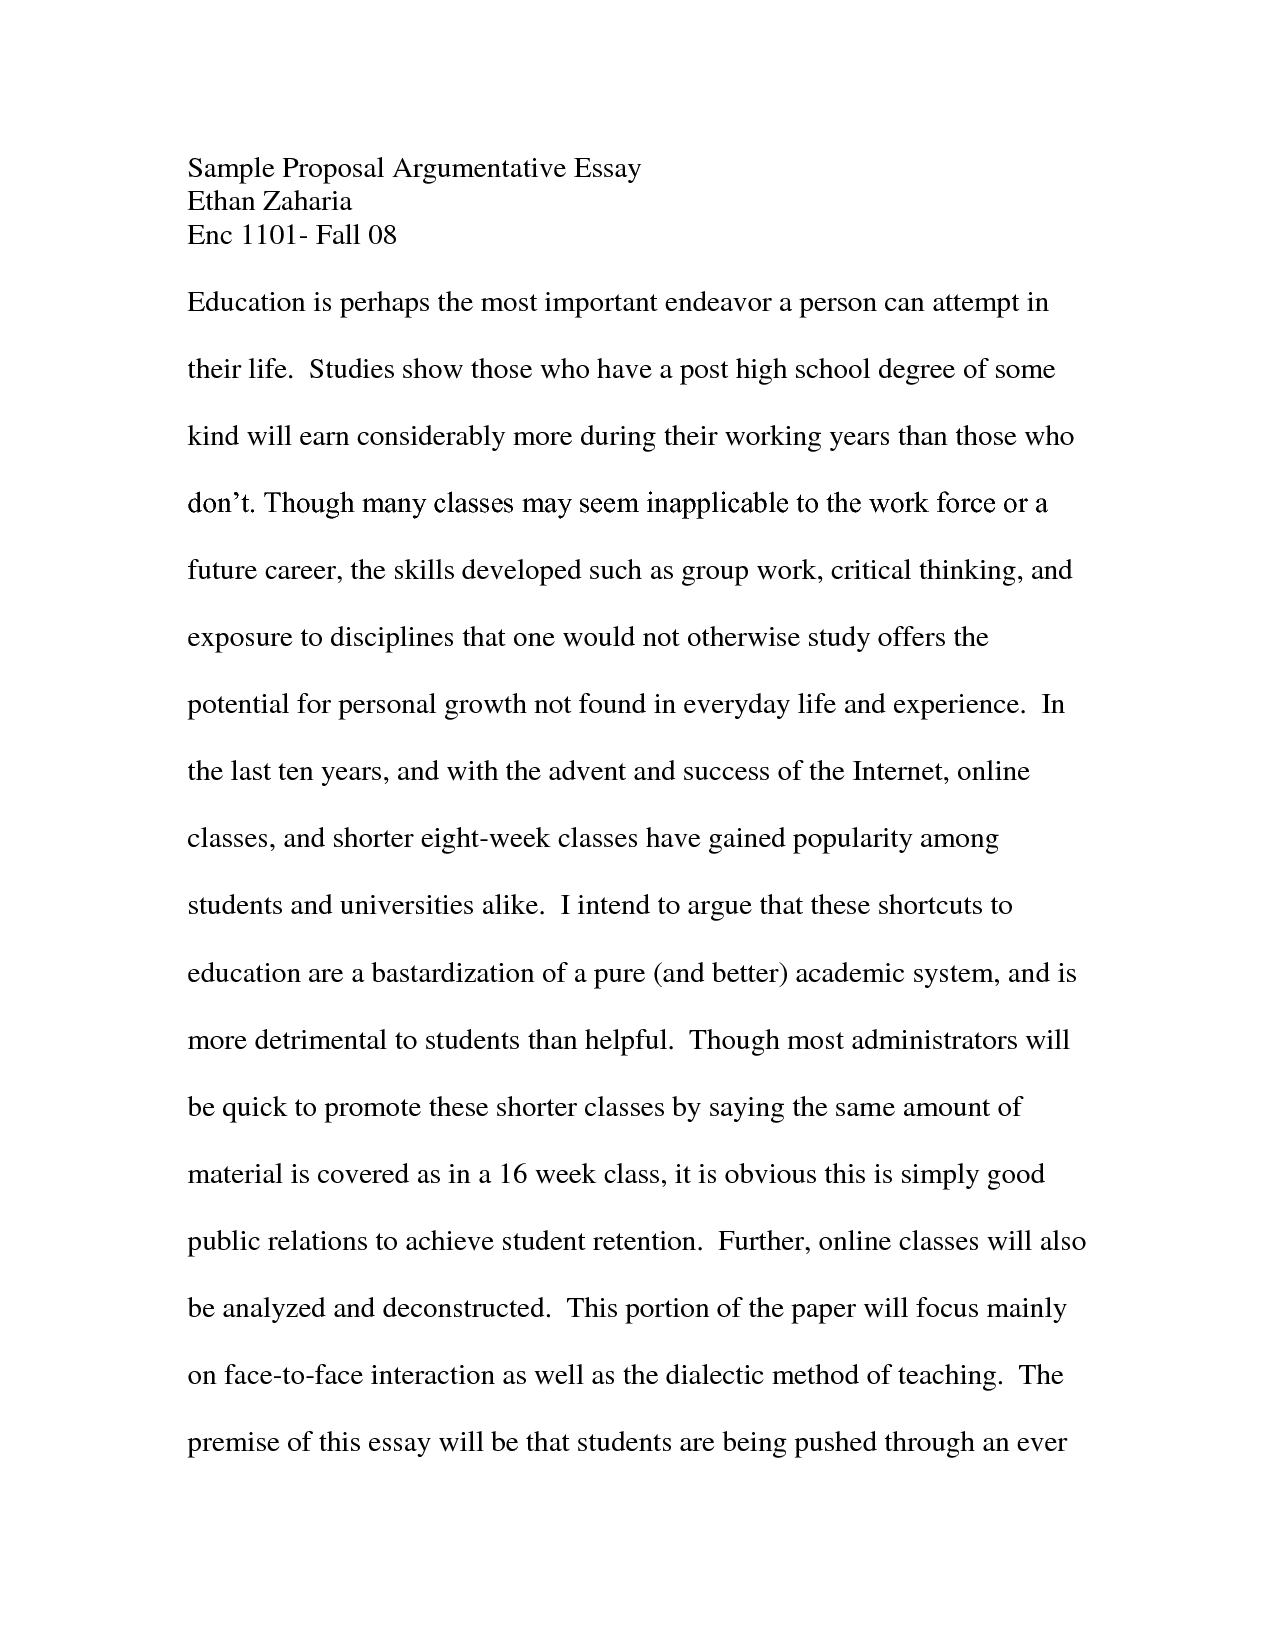 016 Essay Example 3d7hsocgst How To Write Claim For Astounding A An Of Value Fact And Support Full